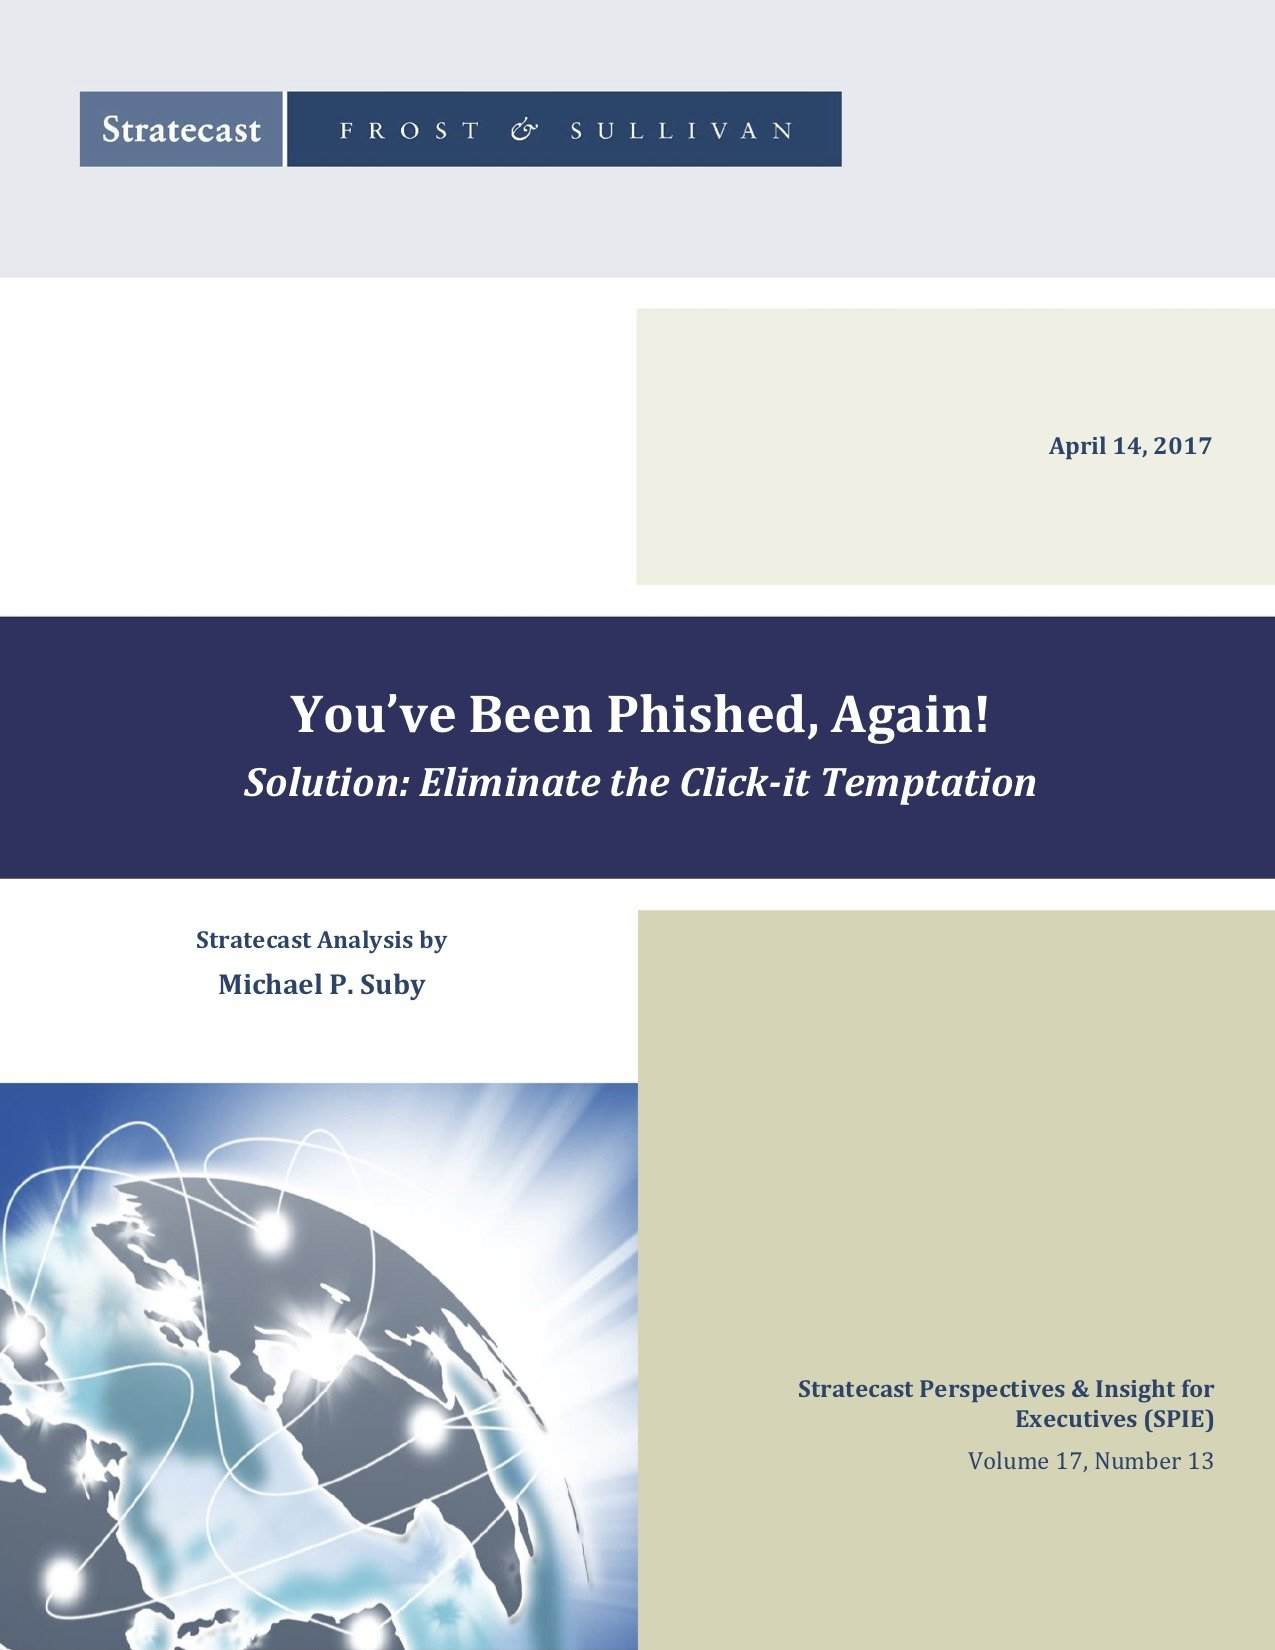 You've Been Phished, Again! Solution - Eliminate the Click-it Temptation